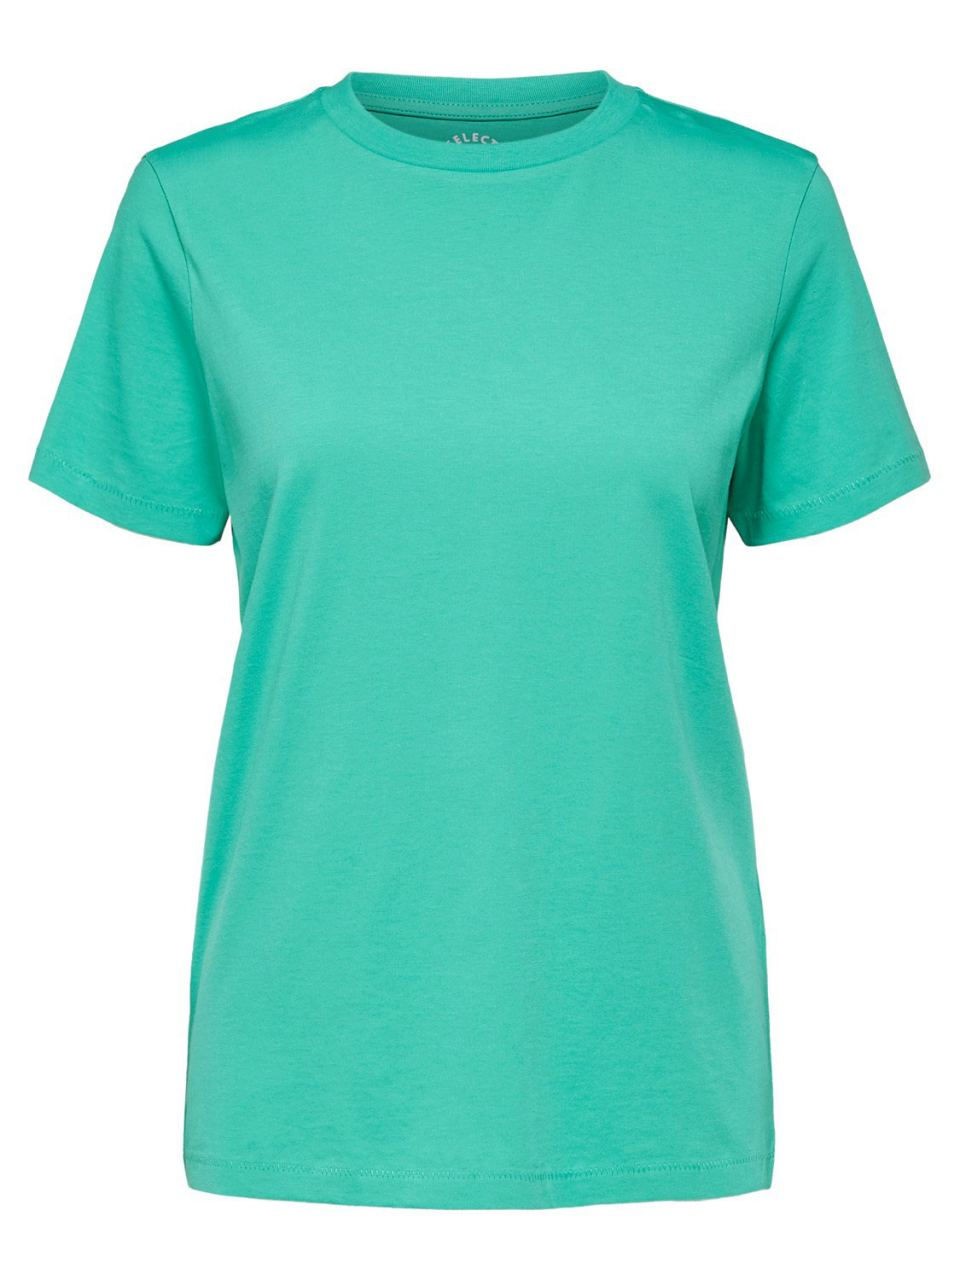 SLFMY PERFECT TEE Gumdrop Green